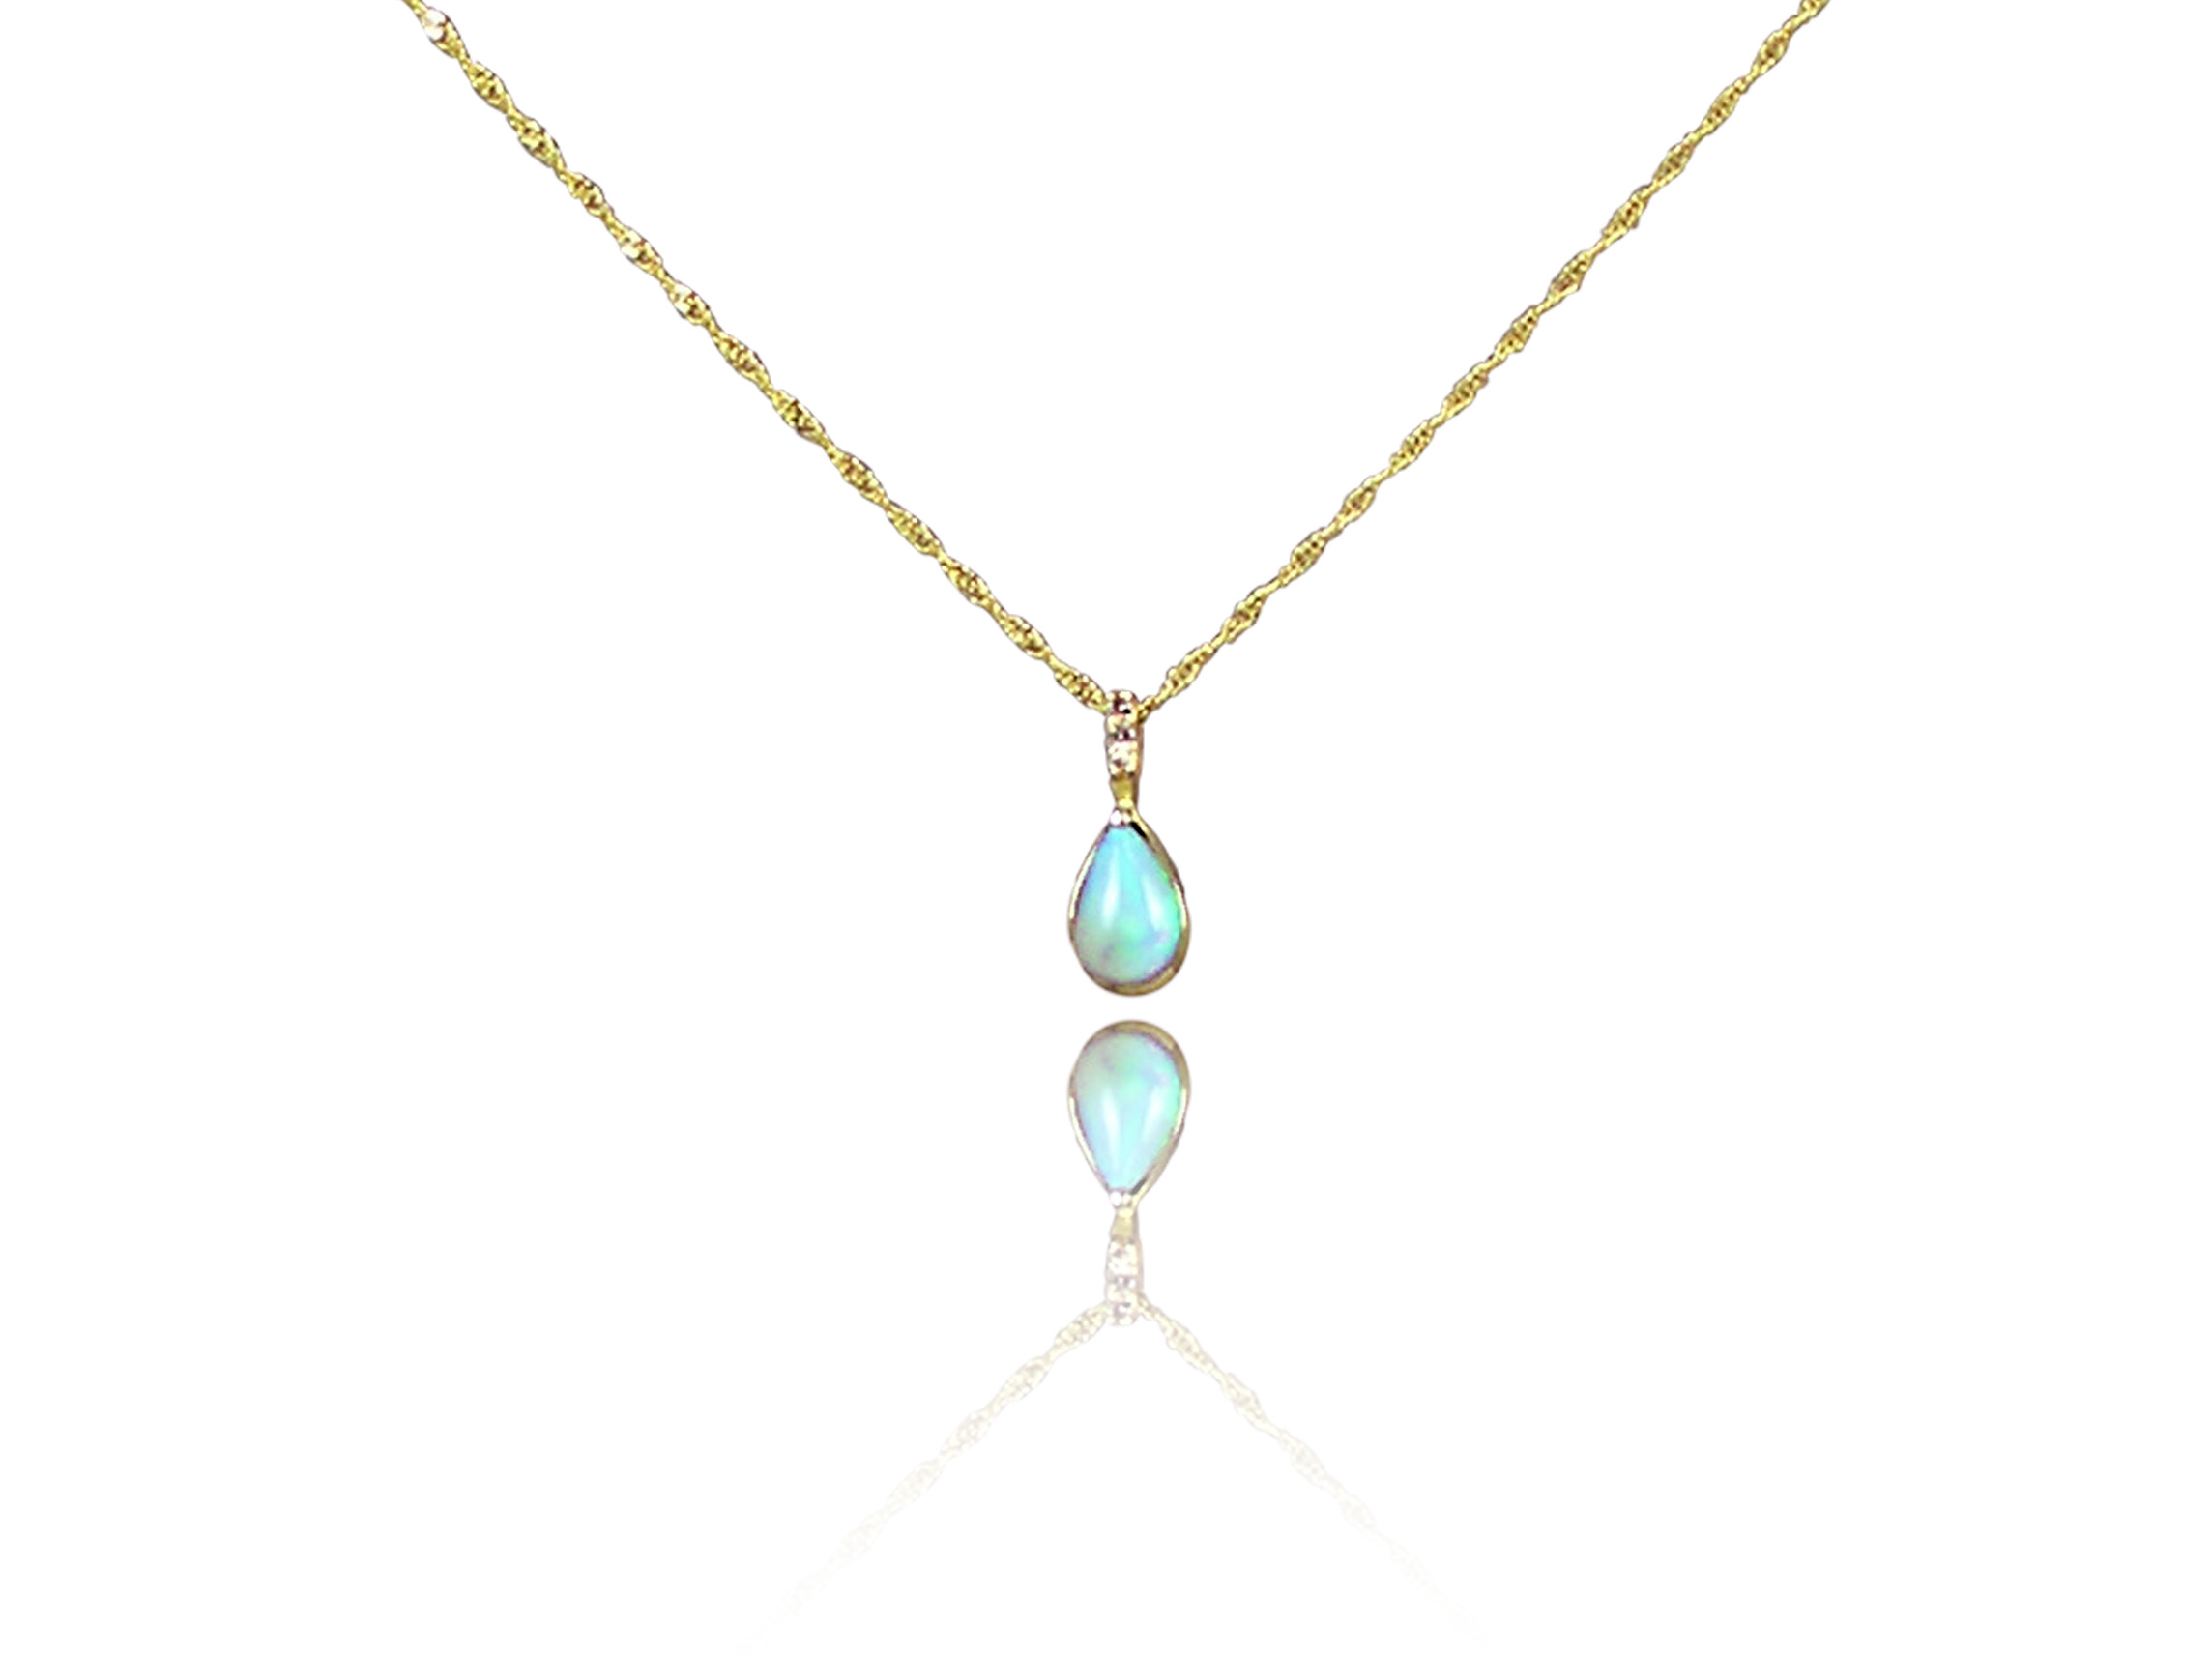 graff diamond pendants pendant shape necklace collections a classic pear featuring